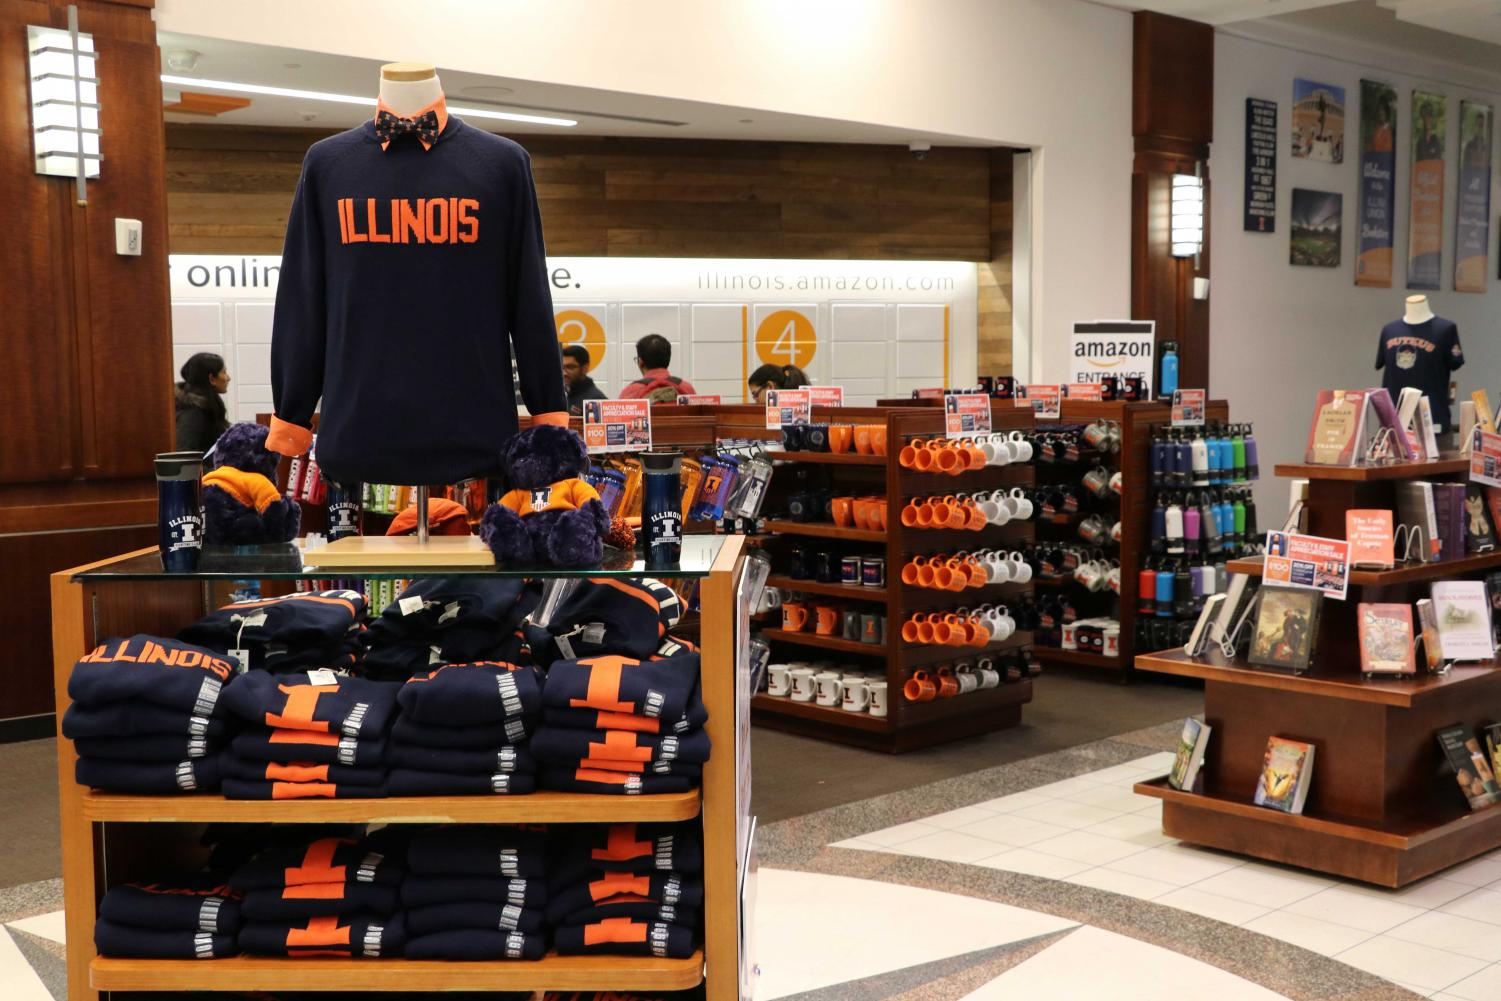 Shelves filled with items for sale at the Illini Union Bookstore, 809 S. Wright St., Champaign. This is a popular destination for students looking to work on campus, as longform editor Andrea writes.